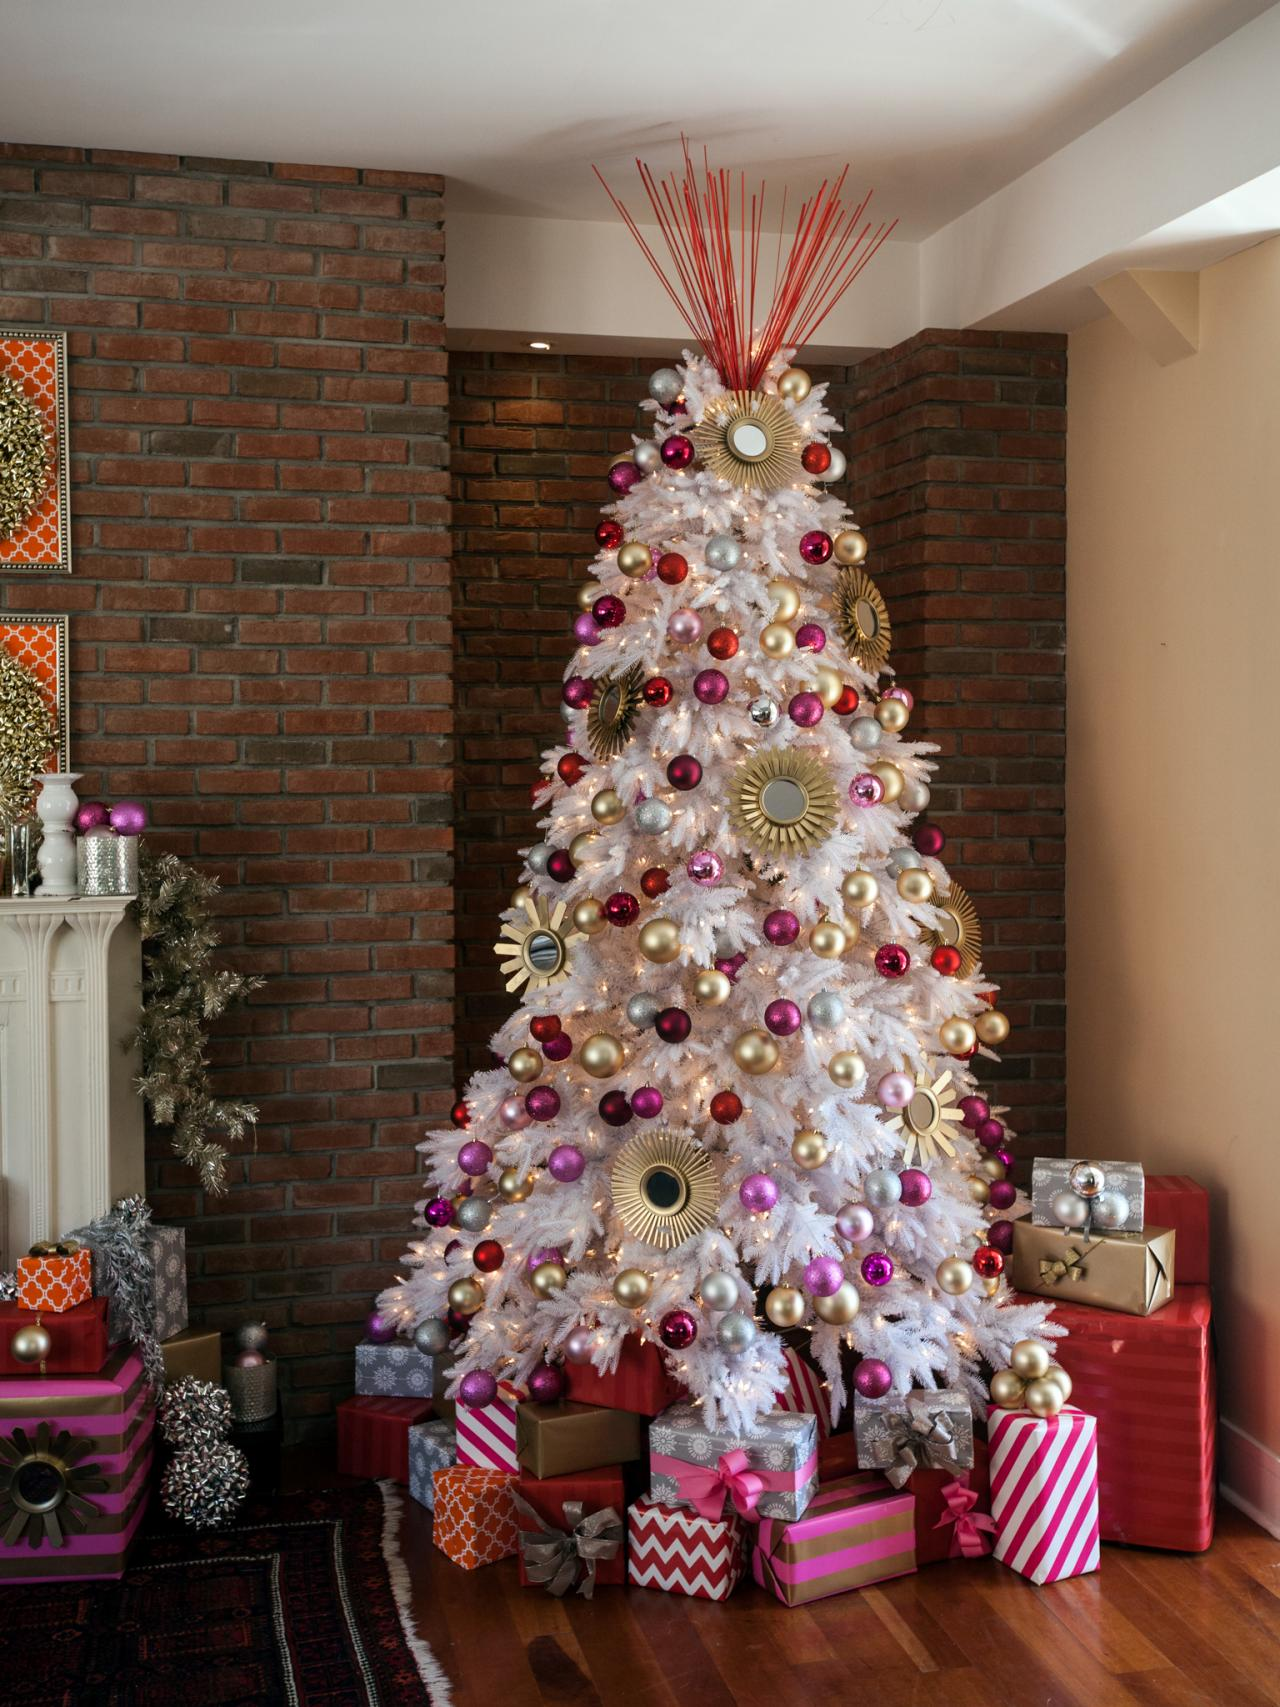 How To Decorate A Christmas Tree Hgtv S Decorating Design Blog Hgtv